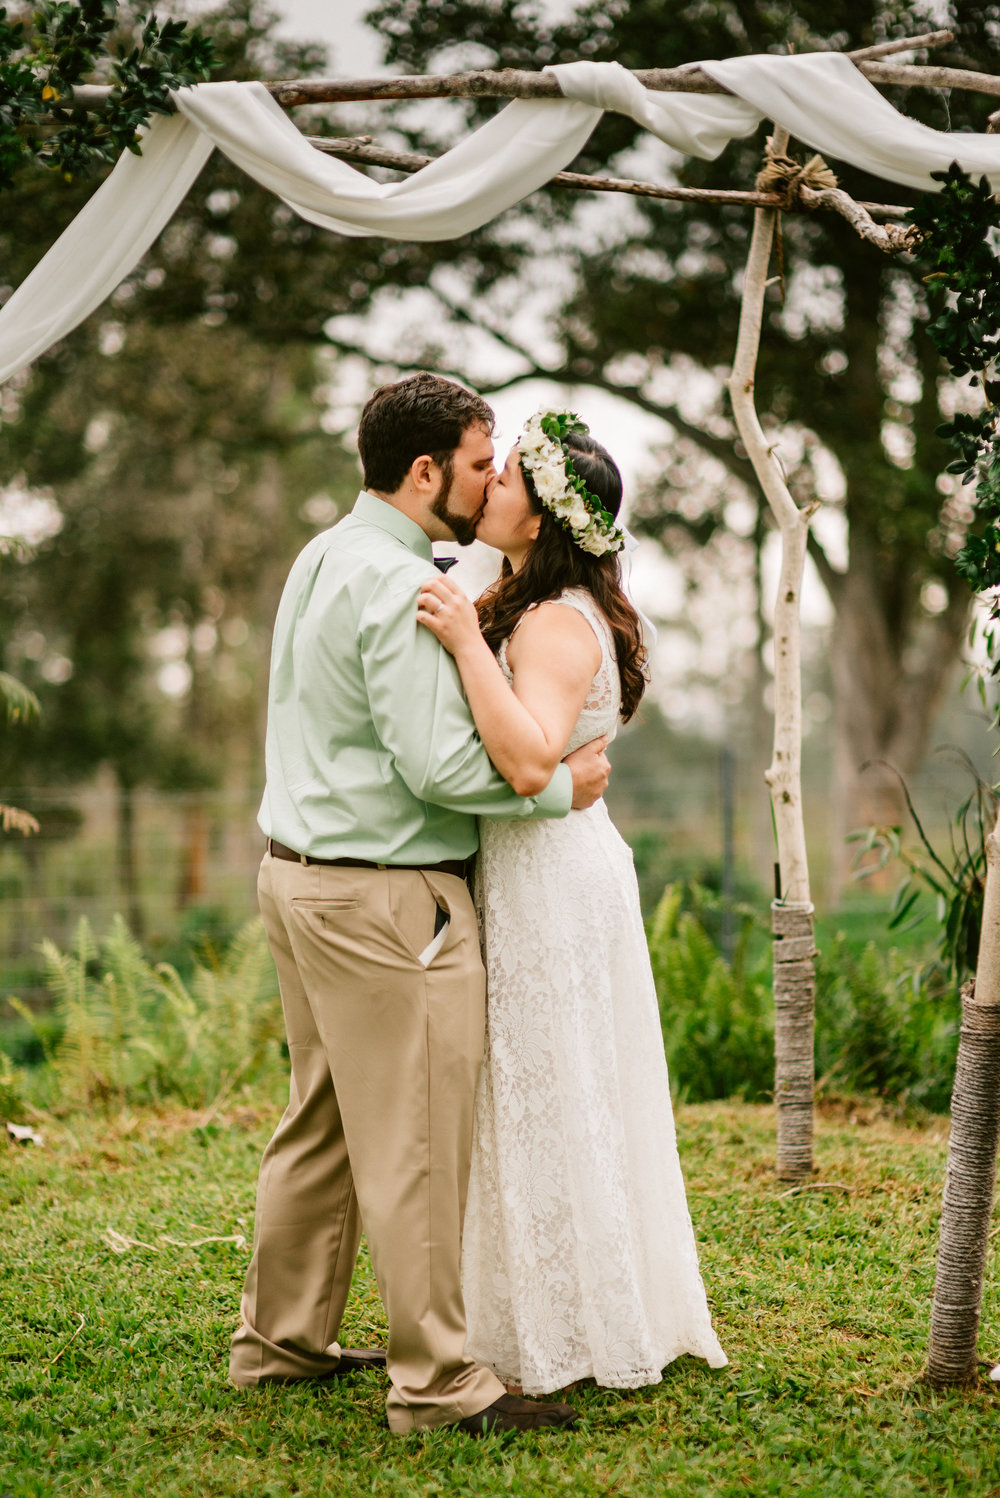 SteeleWedding-Hawaii2018-91.jpg